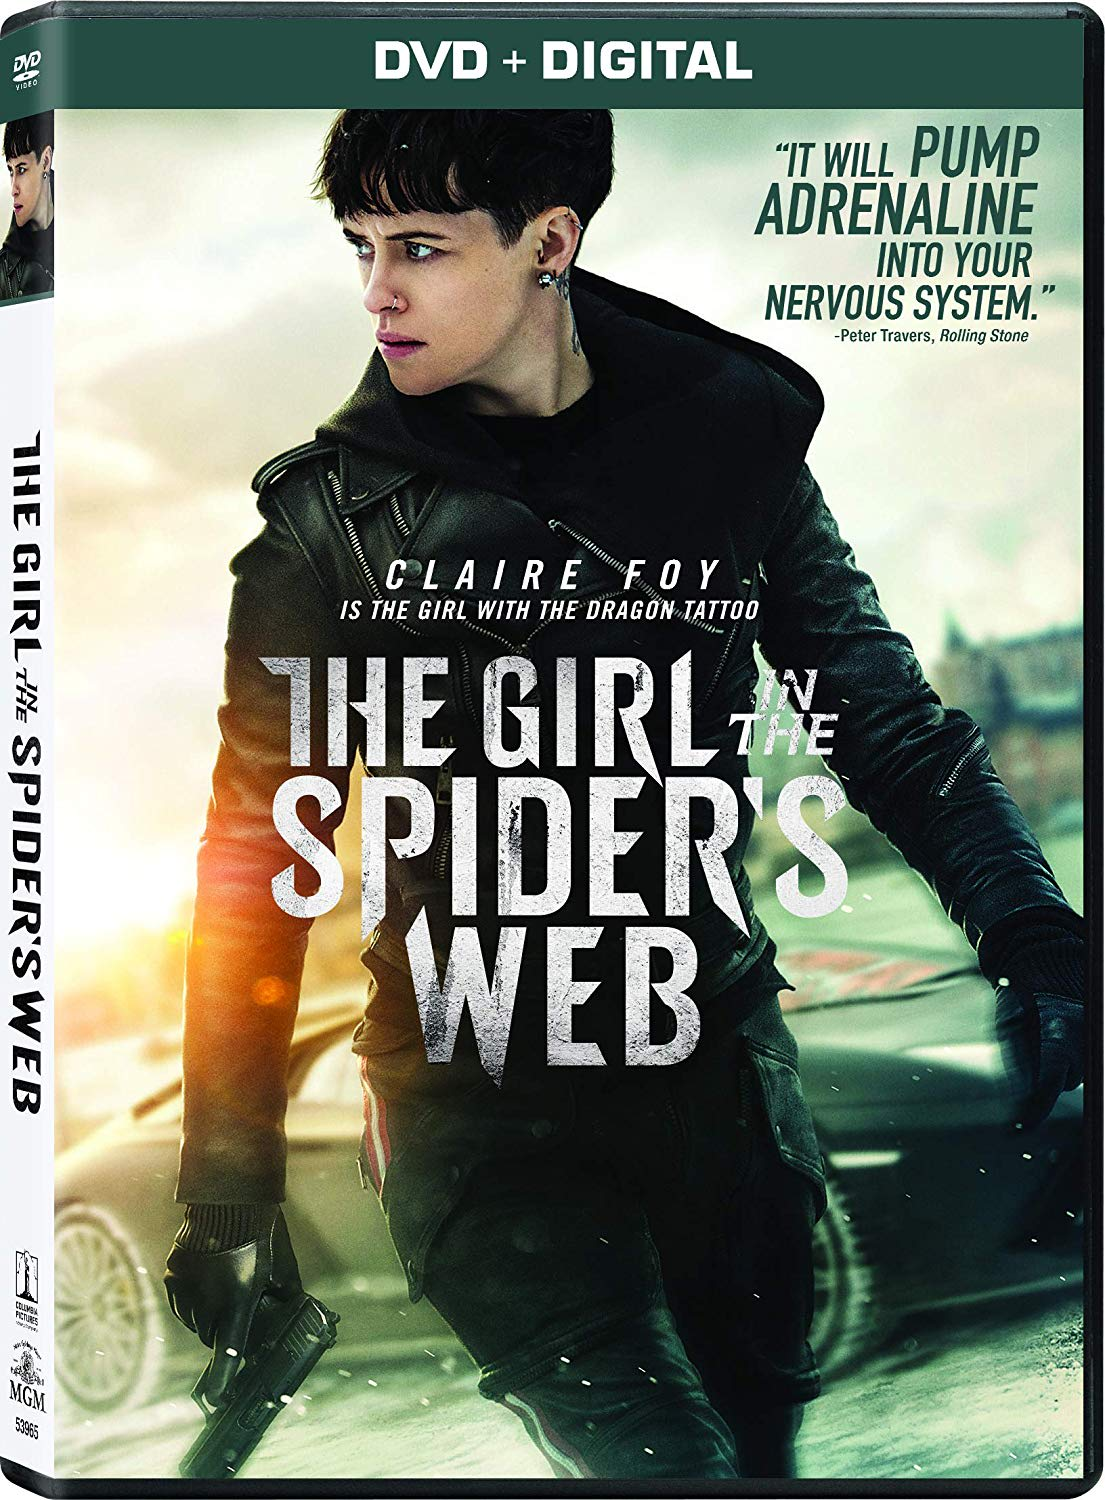 The Girl in the Spider's Web DVD + Digital [DVD]